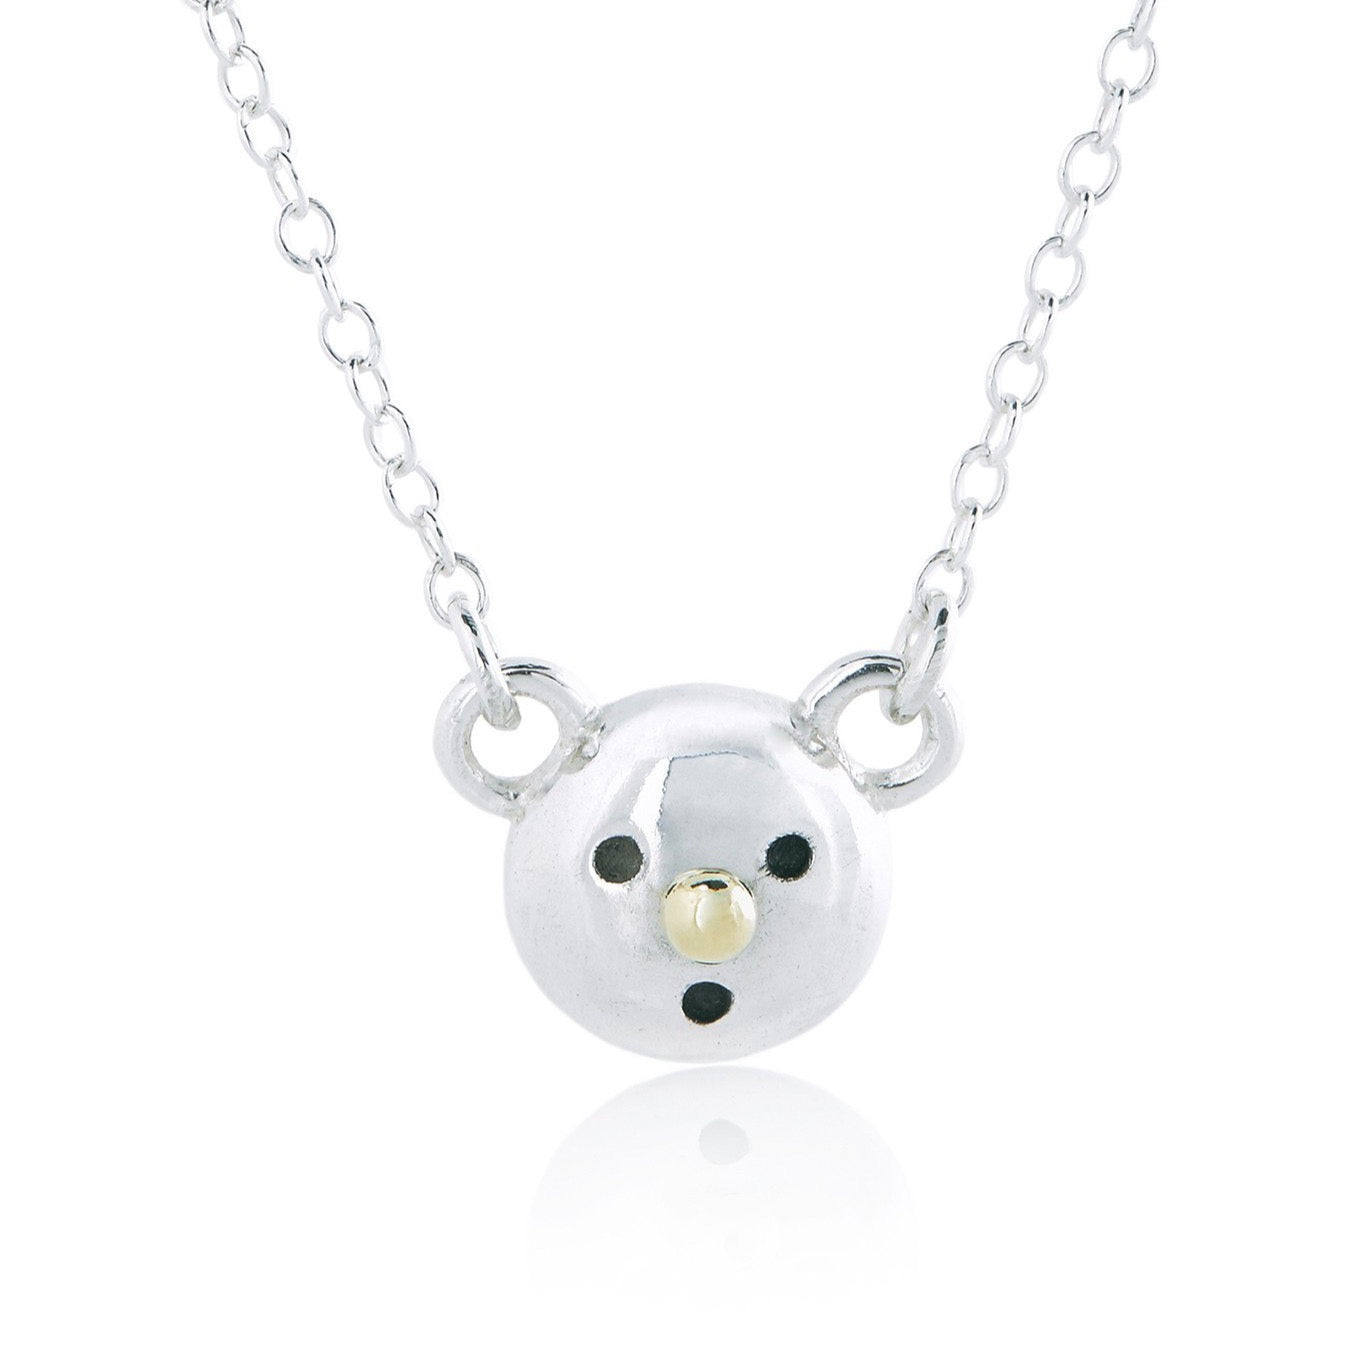 GOLD NOSE BEAR NECKLACE - SILVER/18K YELLOW GOLD/BLACK